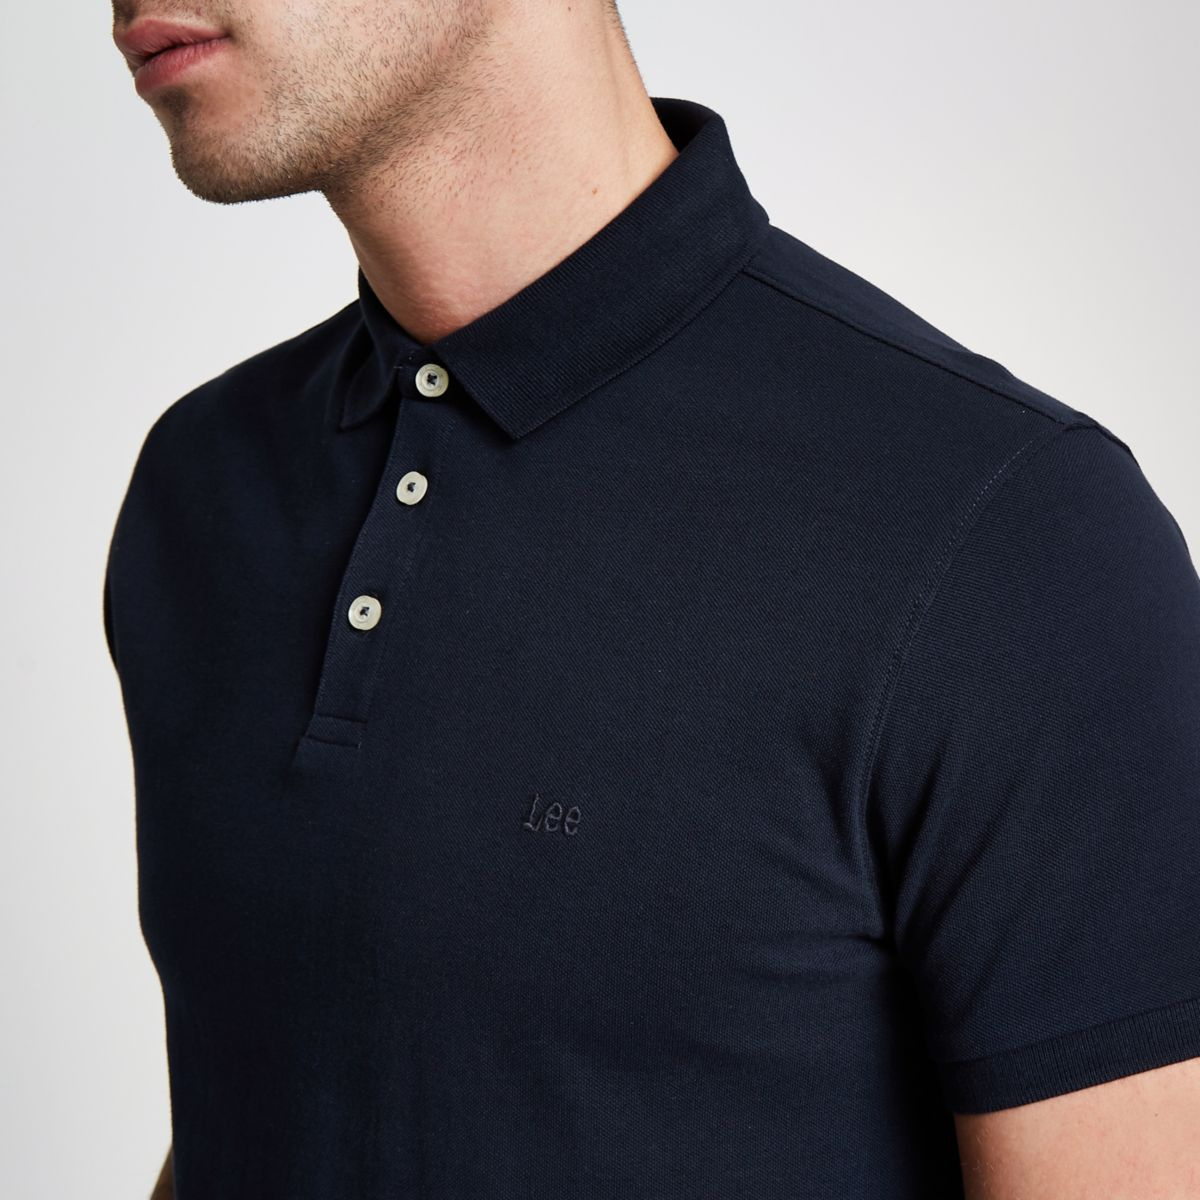 Navy Lee pique short sleeve polo shirt